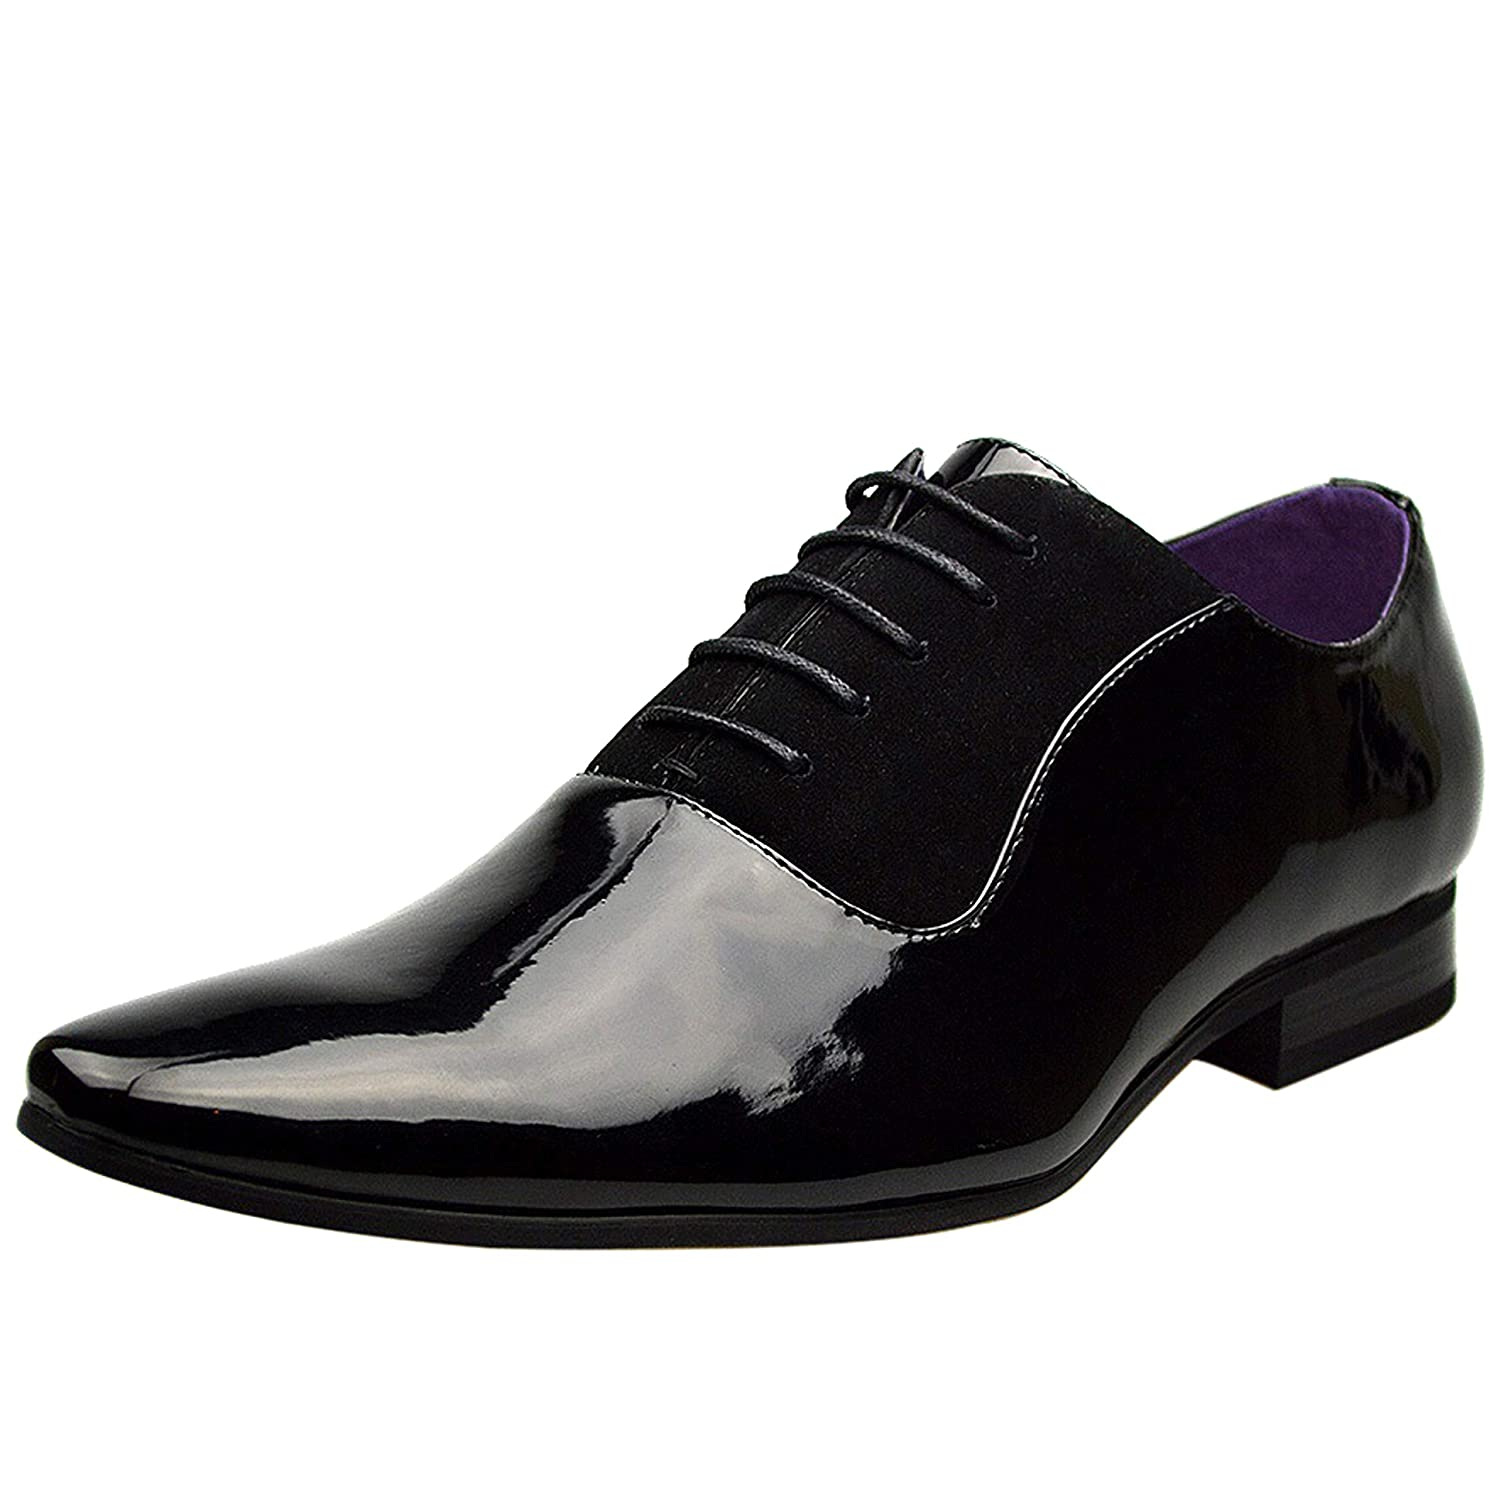 TALLA 40 EU. Para hombre New Casual piel de color negro Smart formal Lace Up Zapatos Reino Unido tamaño 6 7 8 9 10 11